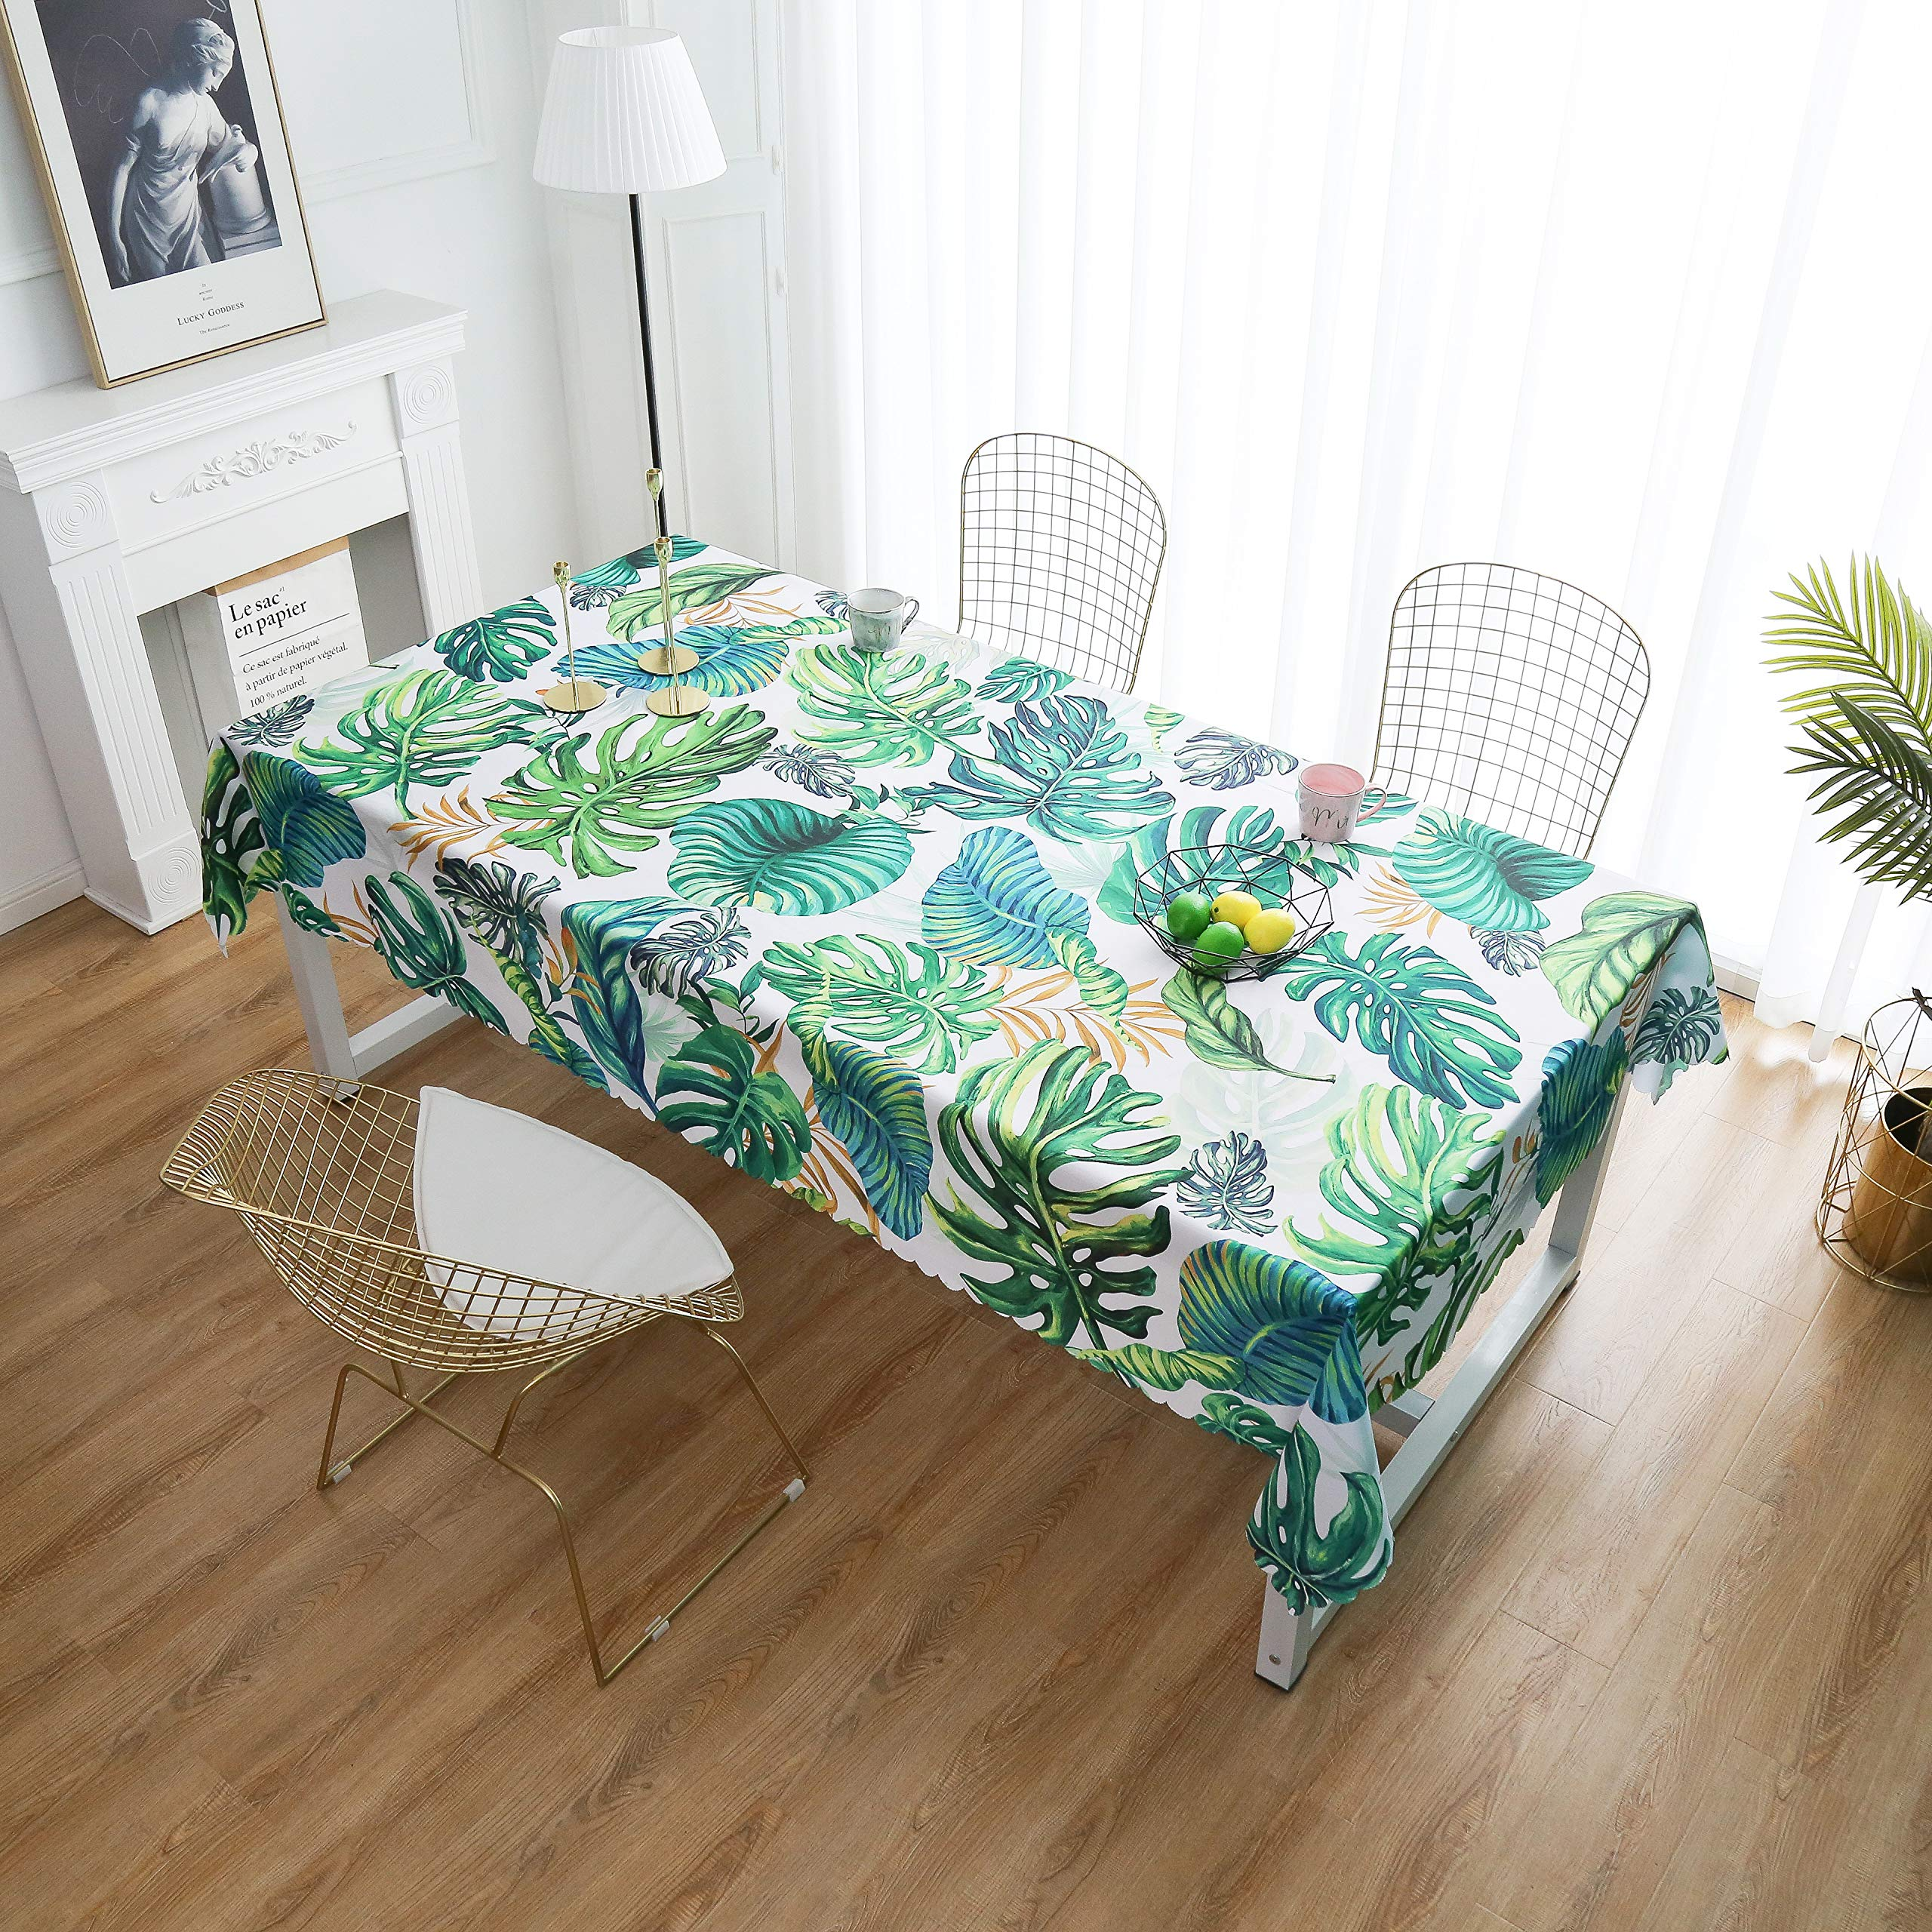 """iLiveX Tablecloth, Original Design Hand Drawing Art Print Table Cloth, Water-Proof Rectangle Table Cover, Kitchen Dining Indoor Outdoor Buffet Tabletop Decoration, 52""""x72"""" (Green Tropical)"""